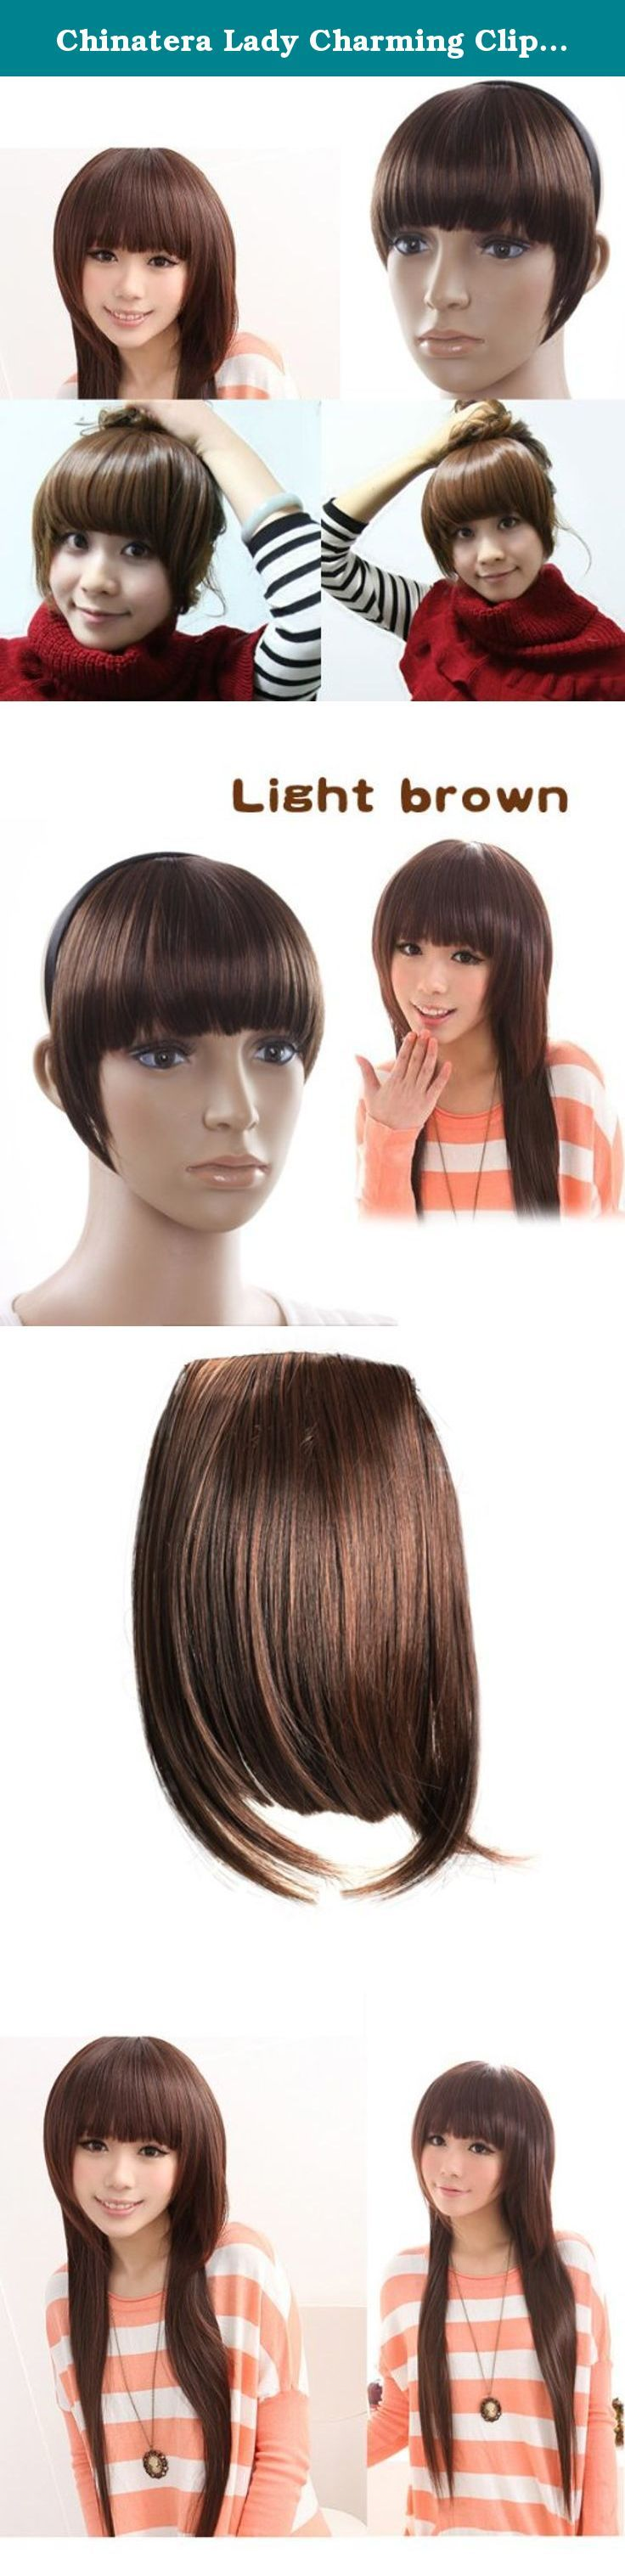 Chinatera Lady Charming Clip On Bangs Fringe Clip Light Brown Hair Extension. Brand new and high quality Length (approx): middle part: 16.5cm ,side part: 22cm( you can cut as desired) Width (approx): 8cm Clip in hair extension are instant, they can be fitted at home in minutes with no need of help from a hair stylist. Stunning clip in bang fringe naturally blends into your own hair. Attached for easy and secure attachment. Ideal for day-to day use No need to cut your hair for bang fringe...